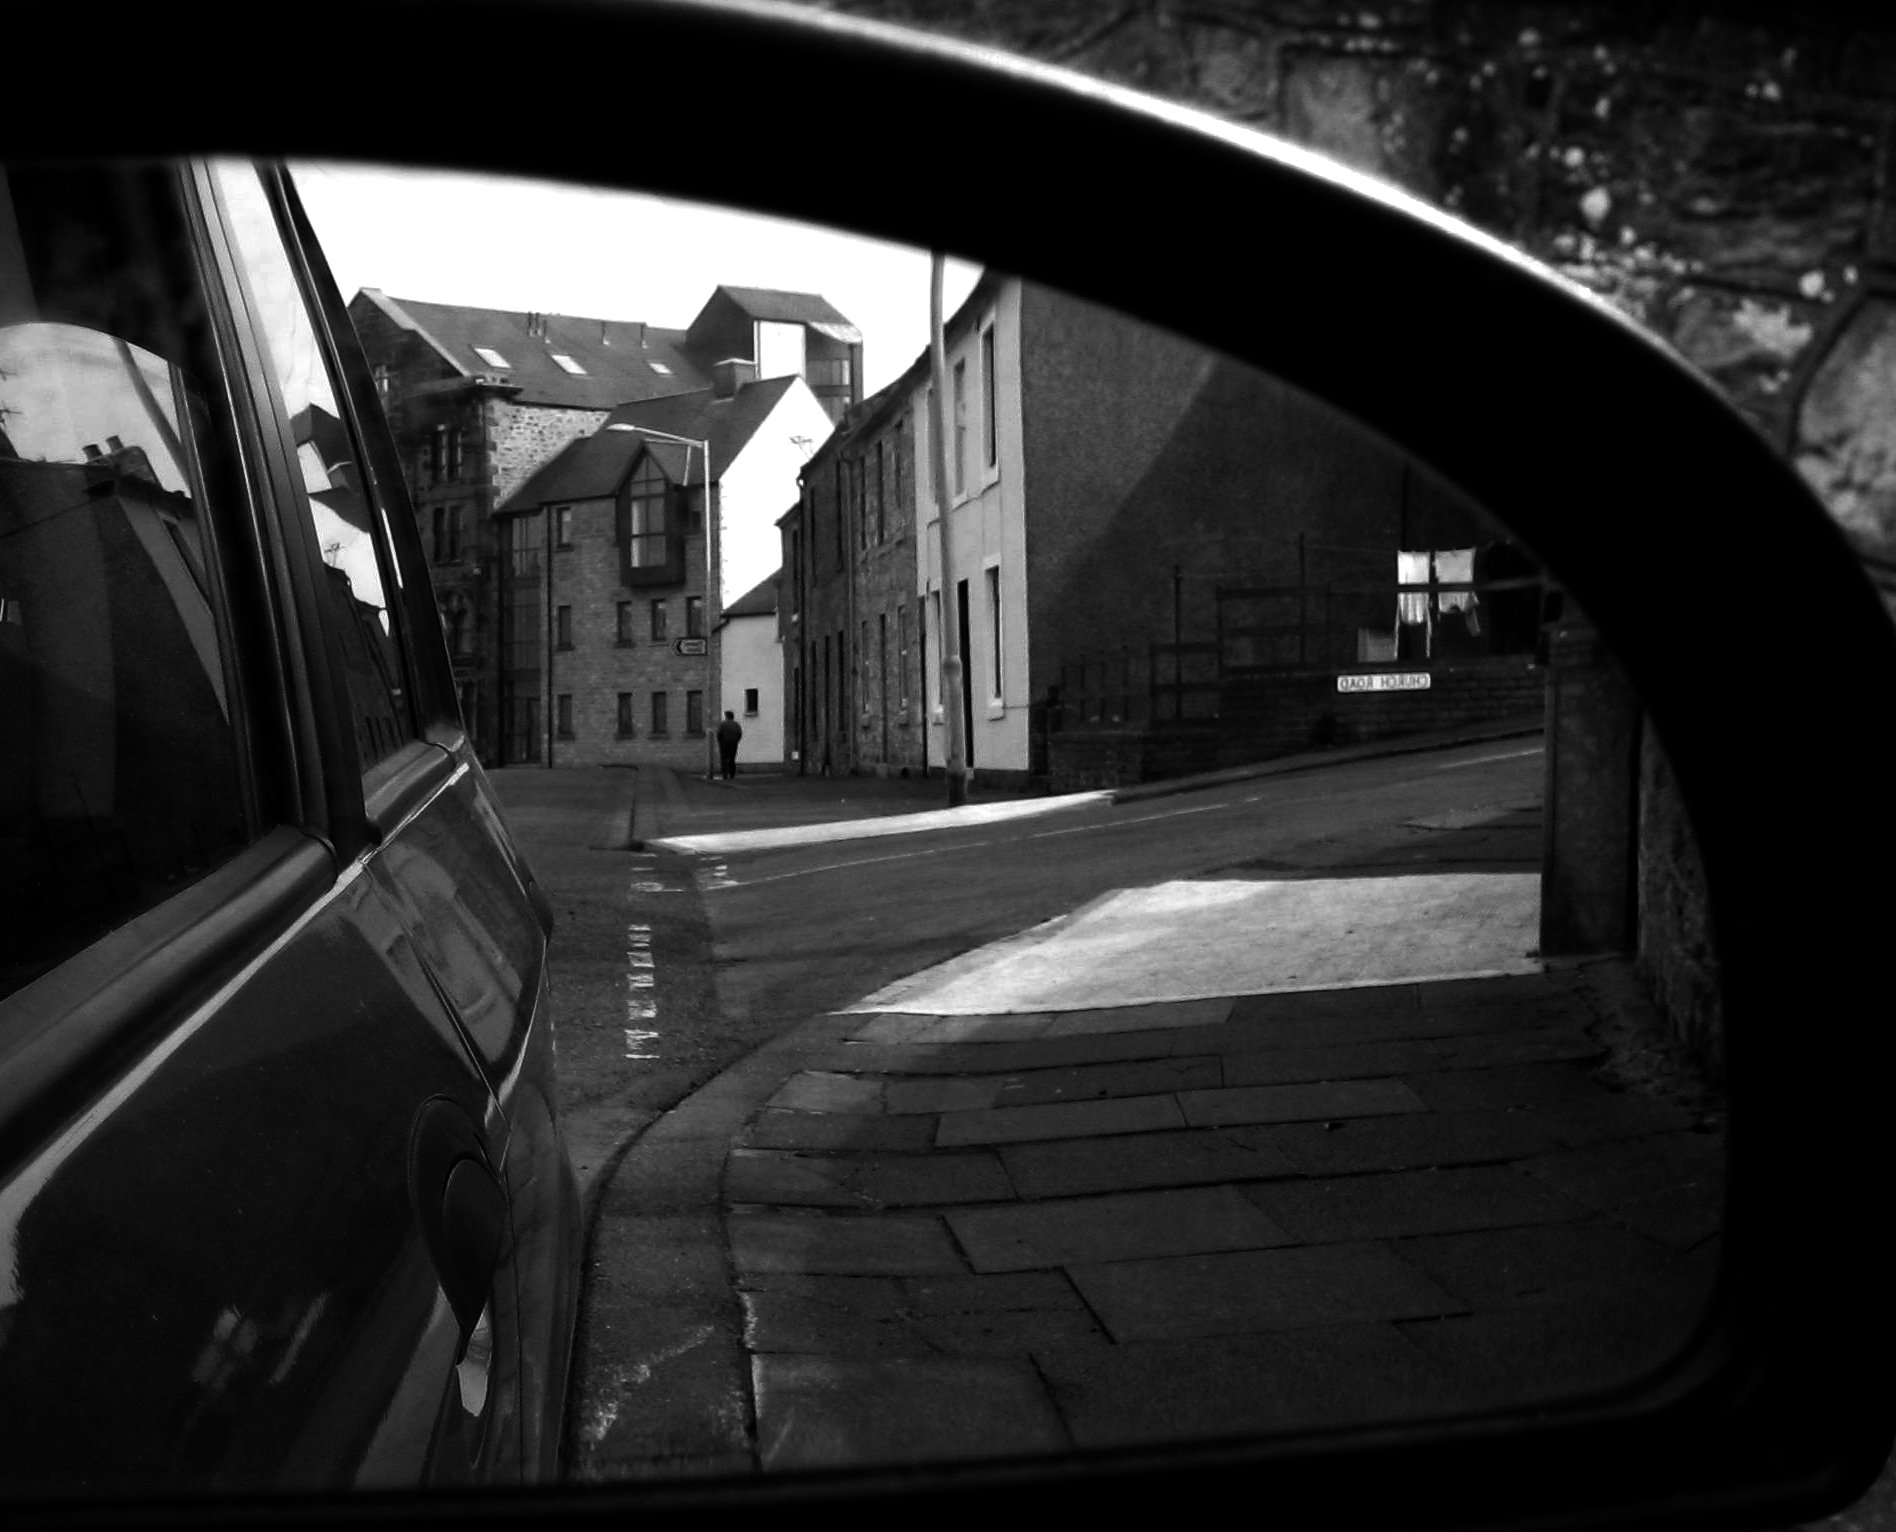 theinfill - Img_8282 - Lowry type street in wing mirror